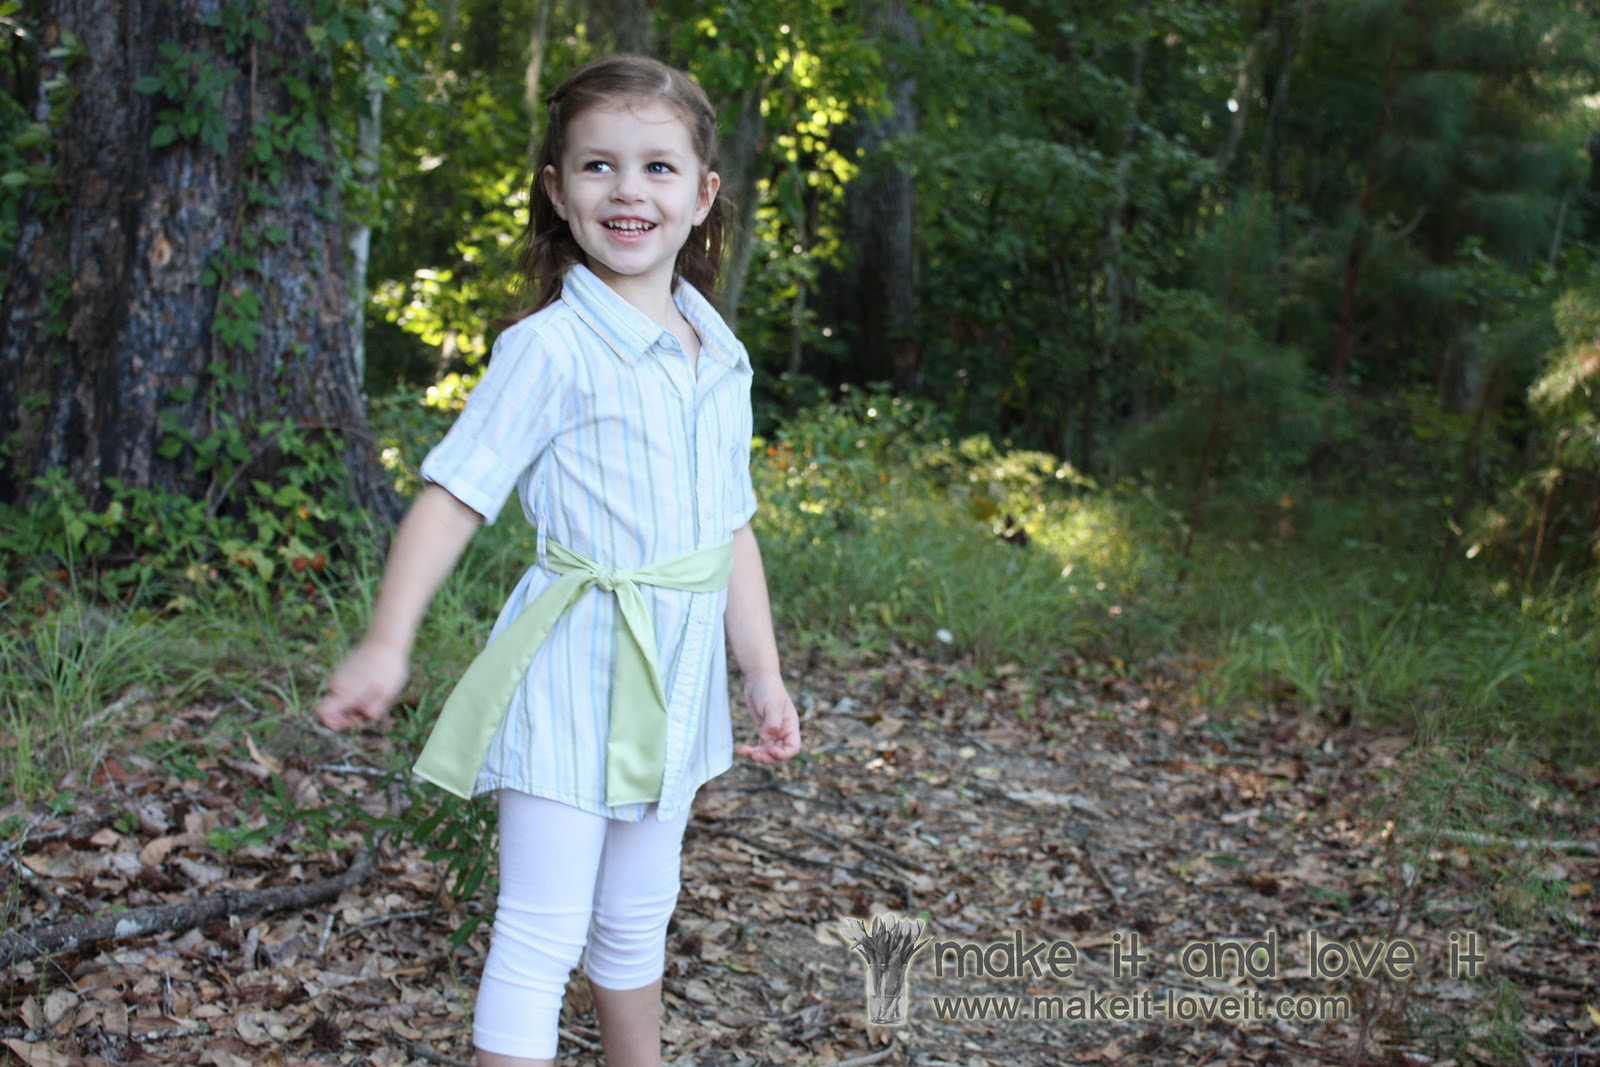 Re-purposing: Boy's Button-Up into Girl's Top with Tie | Make It and ...